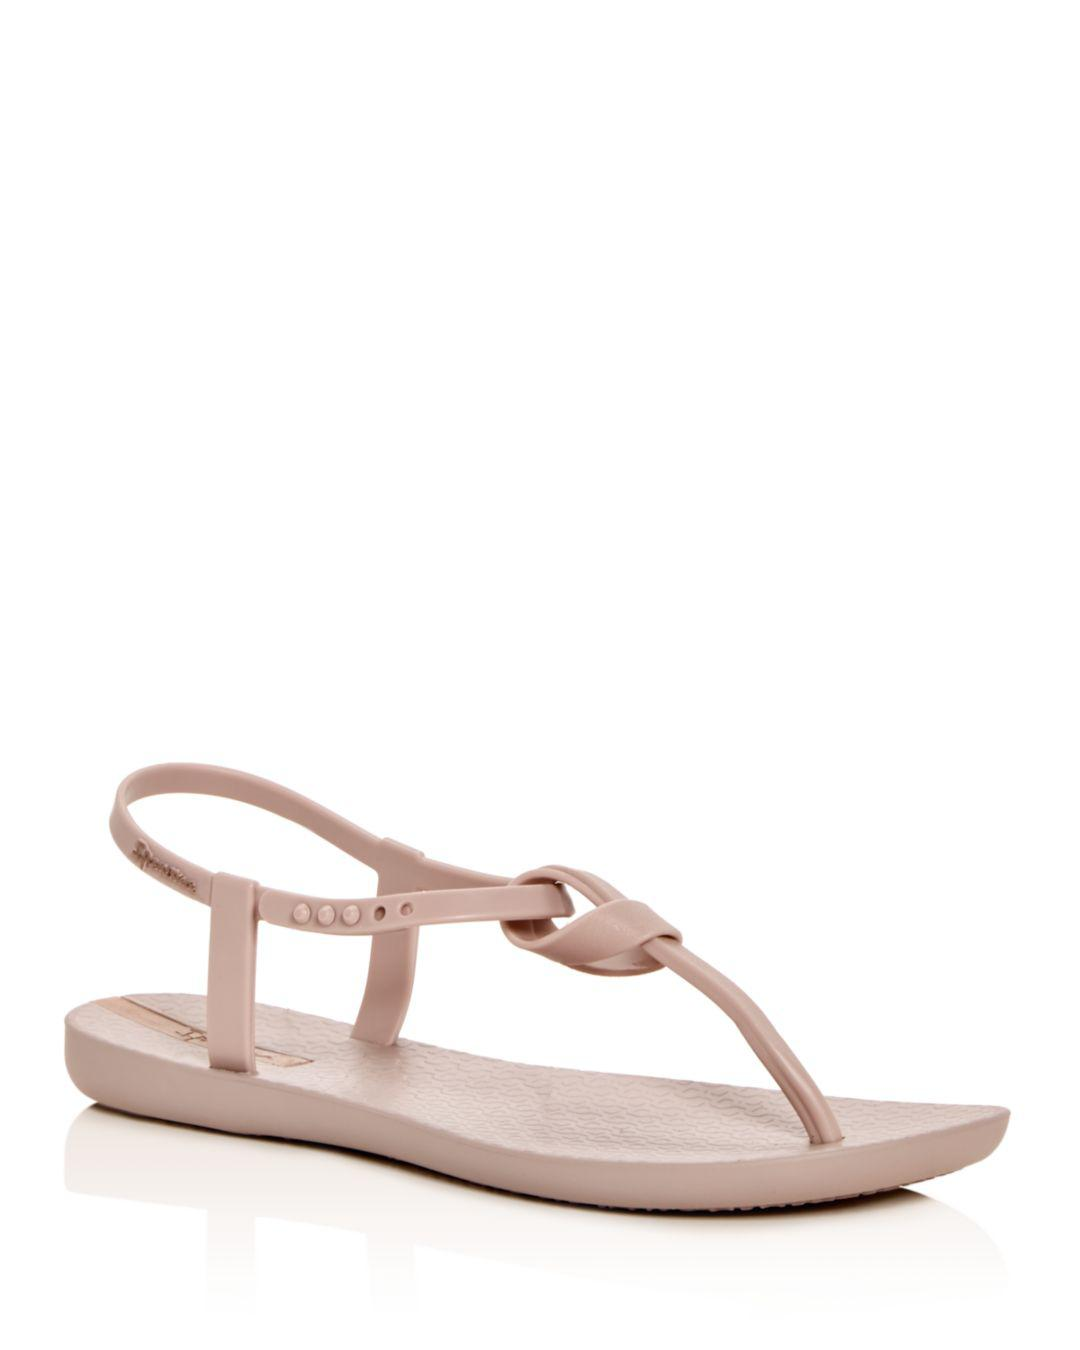 273995865bed Ipanema Ellie Knot T-strap Sandals in Natural - Save 40% - Lyst